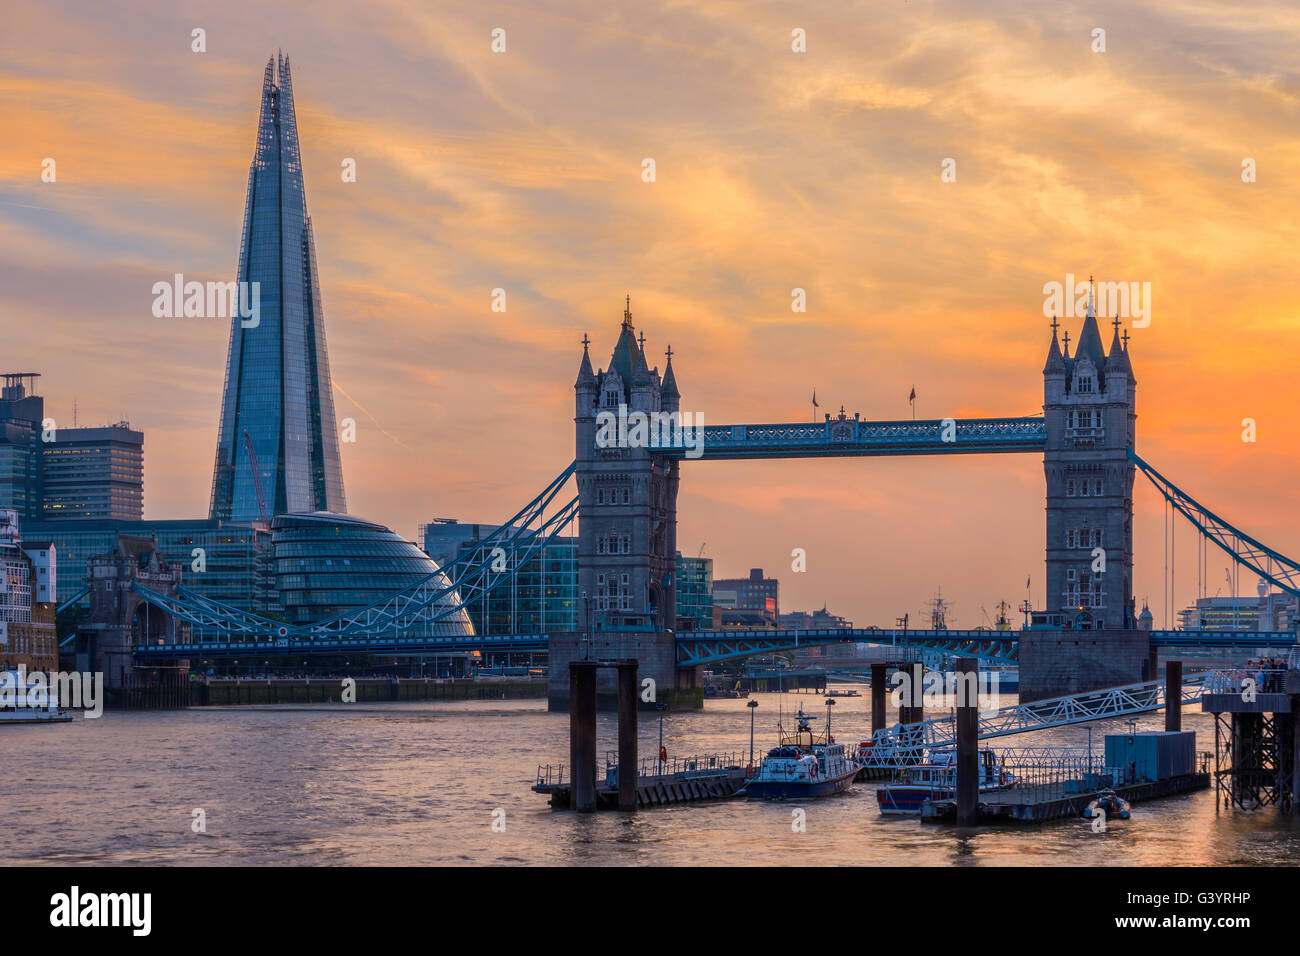 London skyline at sunset with Tower Bridge - Stock Image